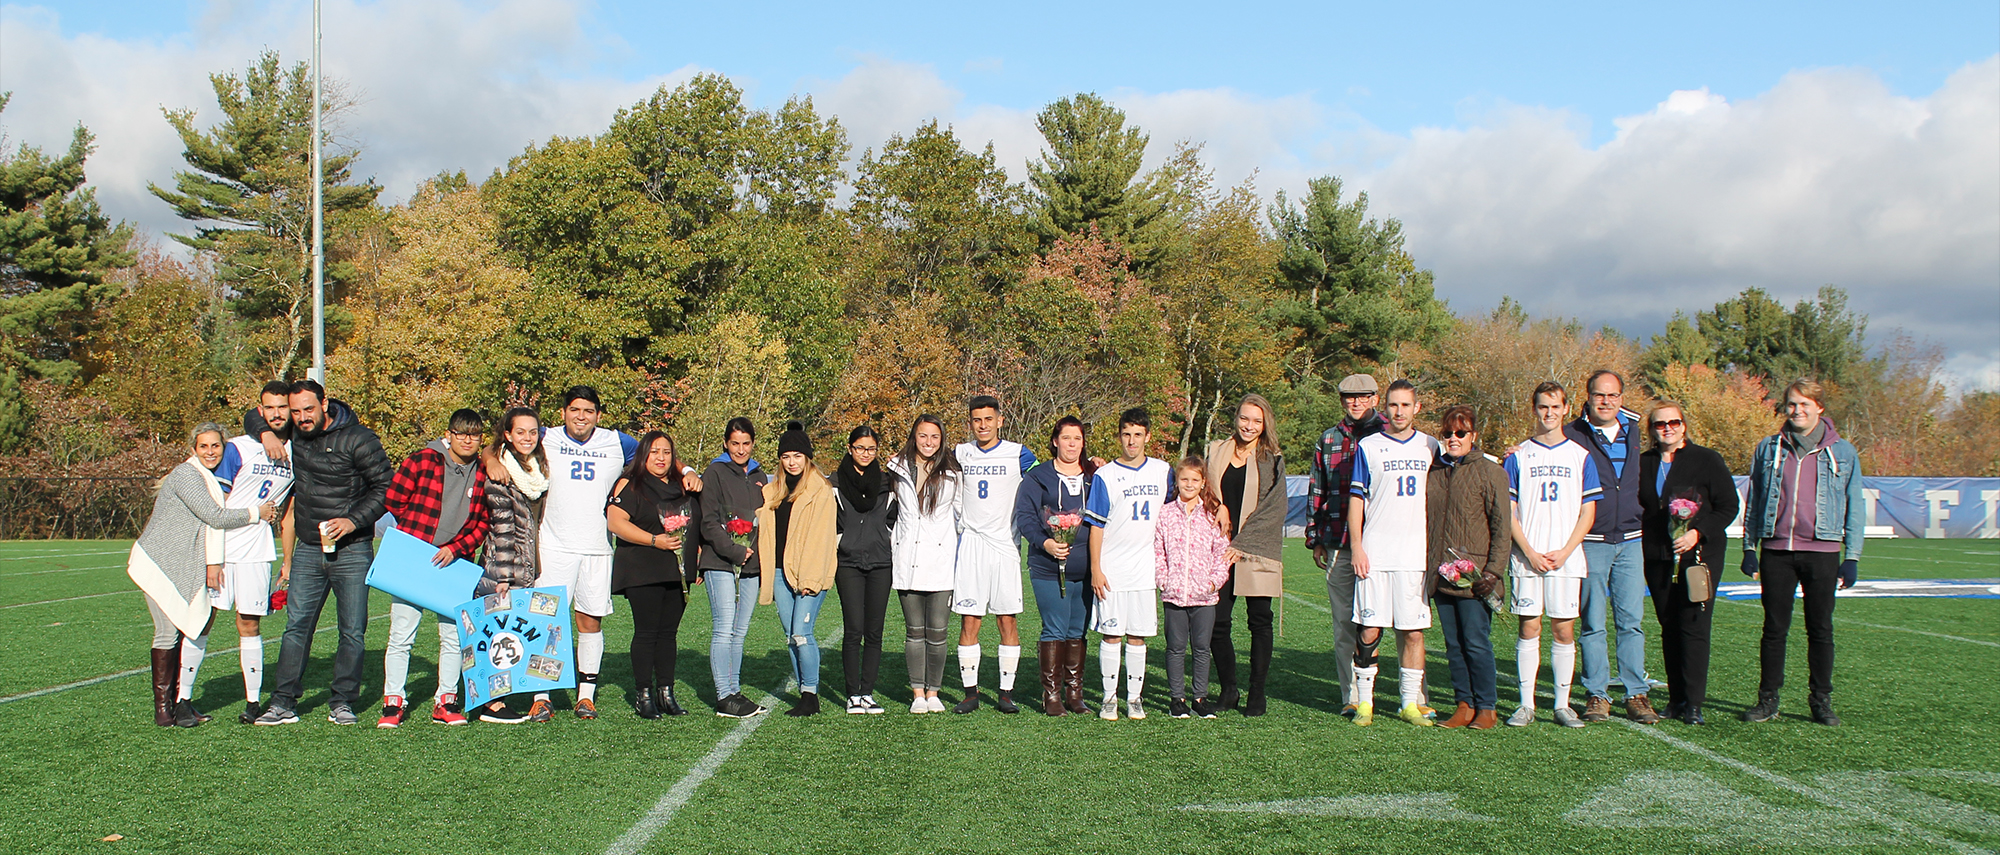 Men's Soccer Senior Day 2018